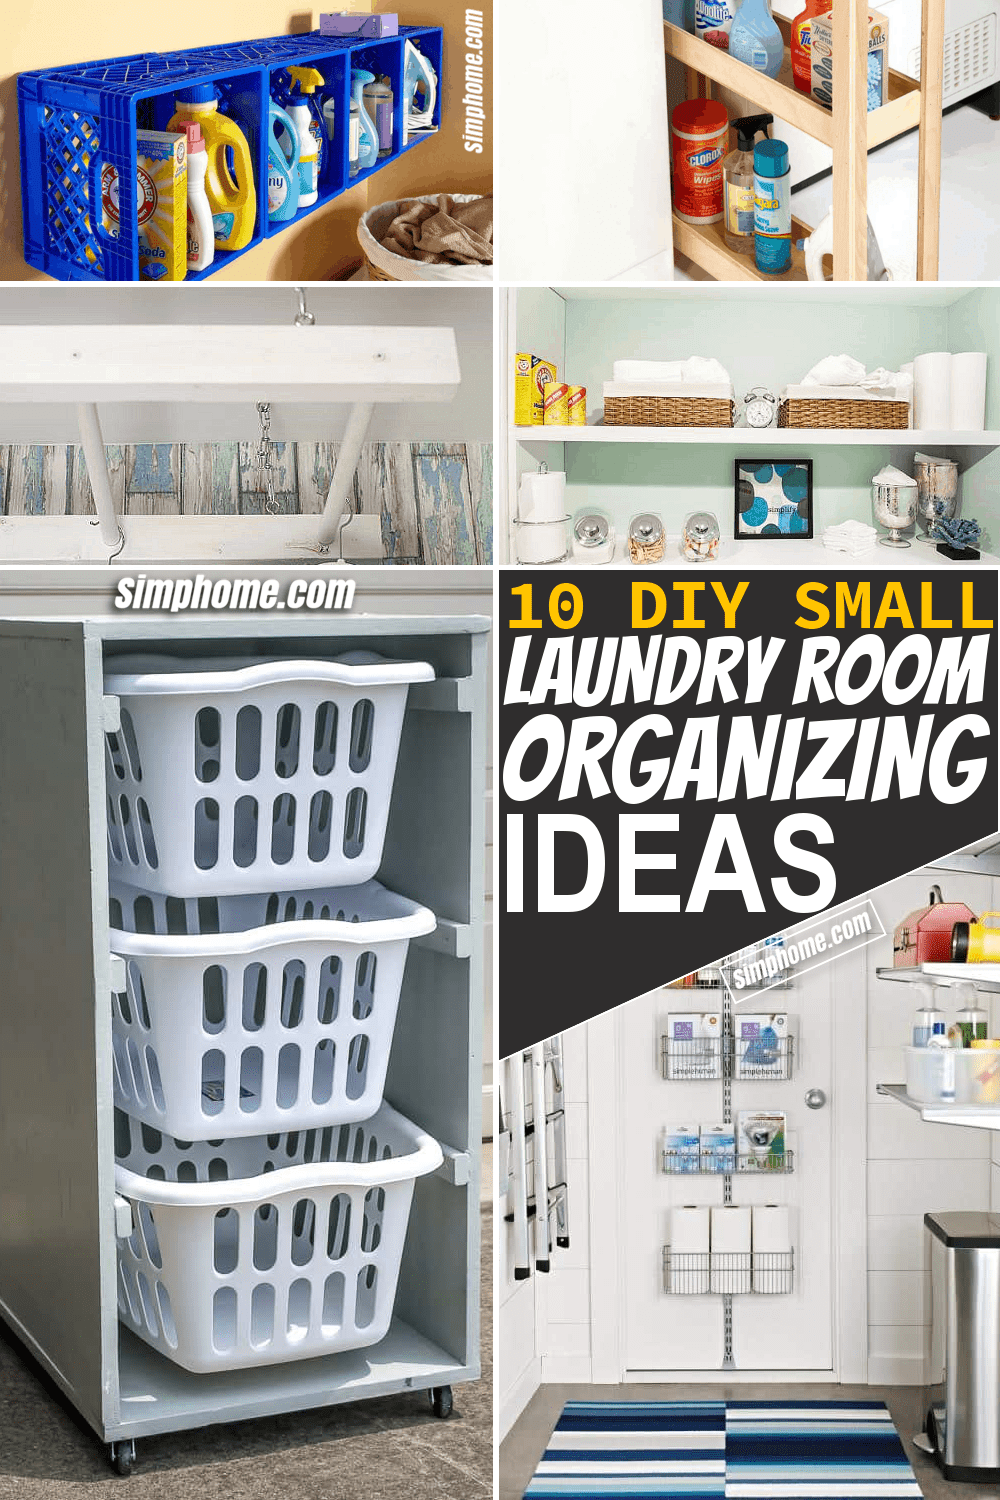 Simphome.com 10 Small Laundry Room Organization Ideas Pinterest Long